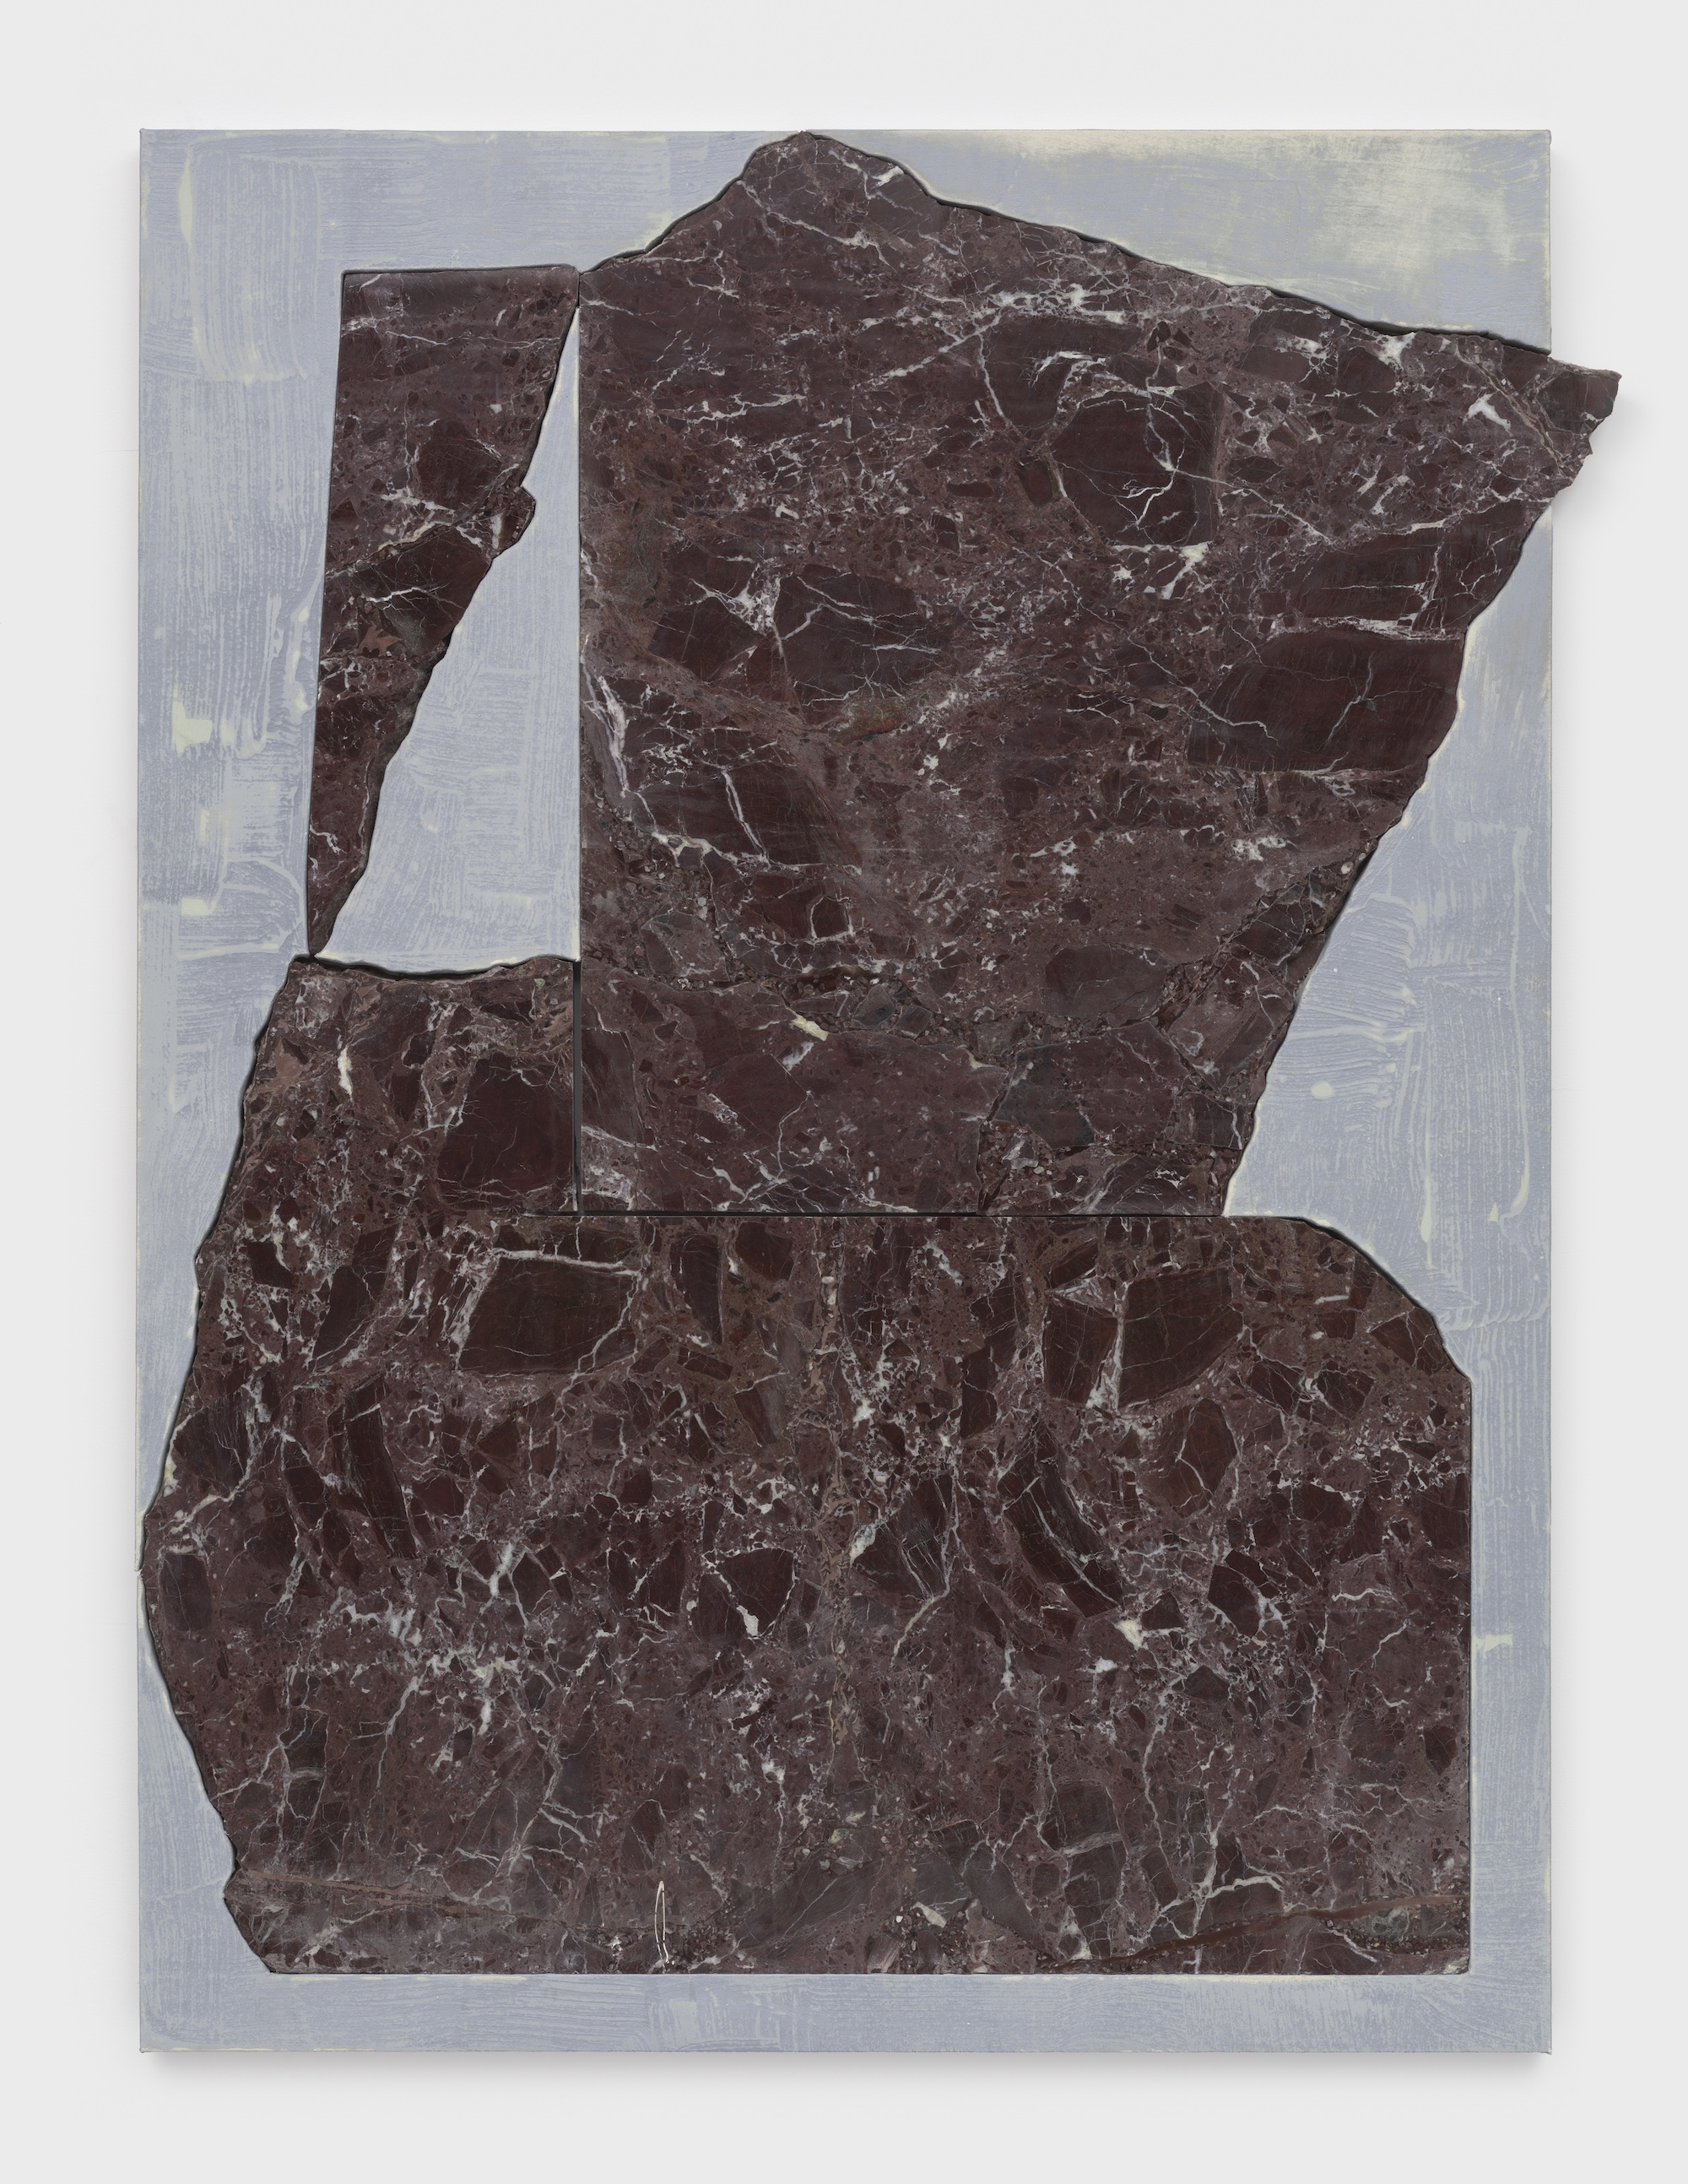 Sam Moyer Little Pitcher, 2020 marble, acrylic on plaster-coated canvas mounted to MDF 52 x 40 1/4 x 1 inches (132.1 x 102.2 x 2.5 cm) © Sam Moyer Photo: JSP Art Photography Courtesy: the artist and Sean Kelly, New York